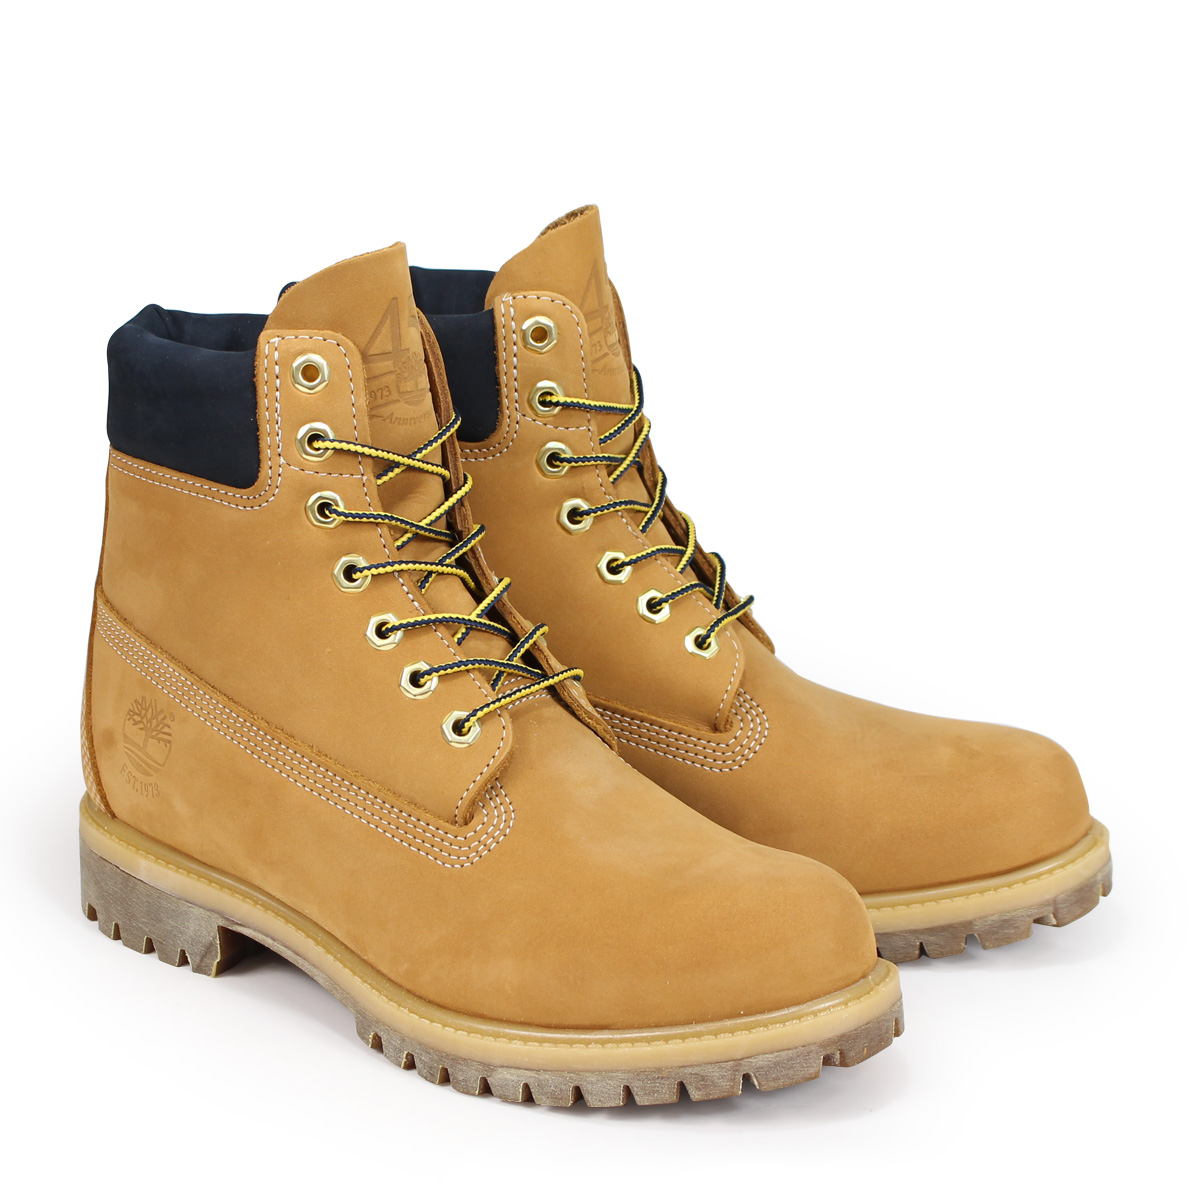 best quality designer fashion well known 6 inches of Timberland 6-INCH WATERPROOF PREMIUM BOOTS Timberland boots  men's W ワイズウィート A1VXW [193]